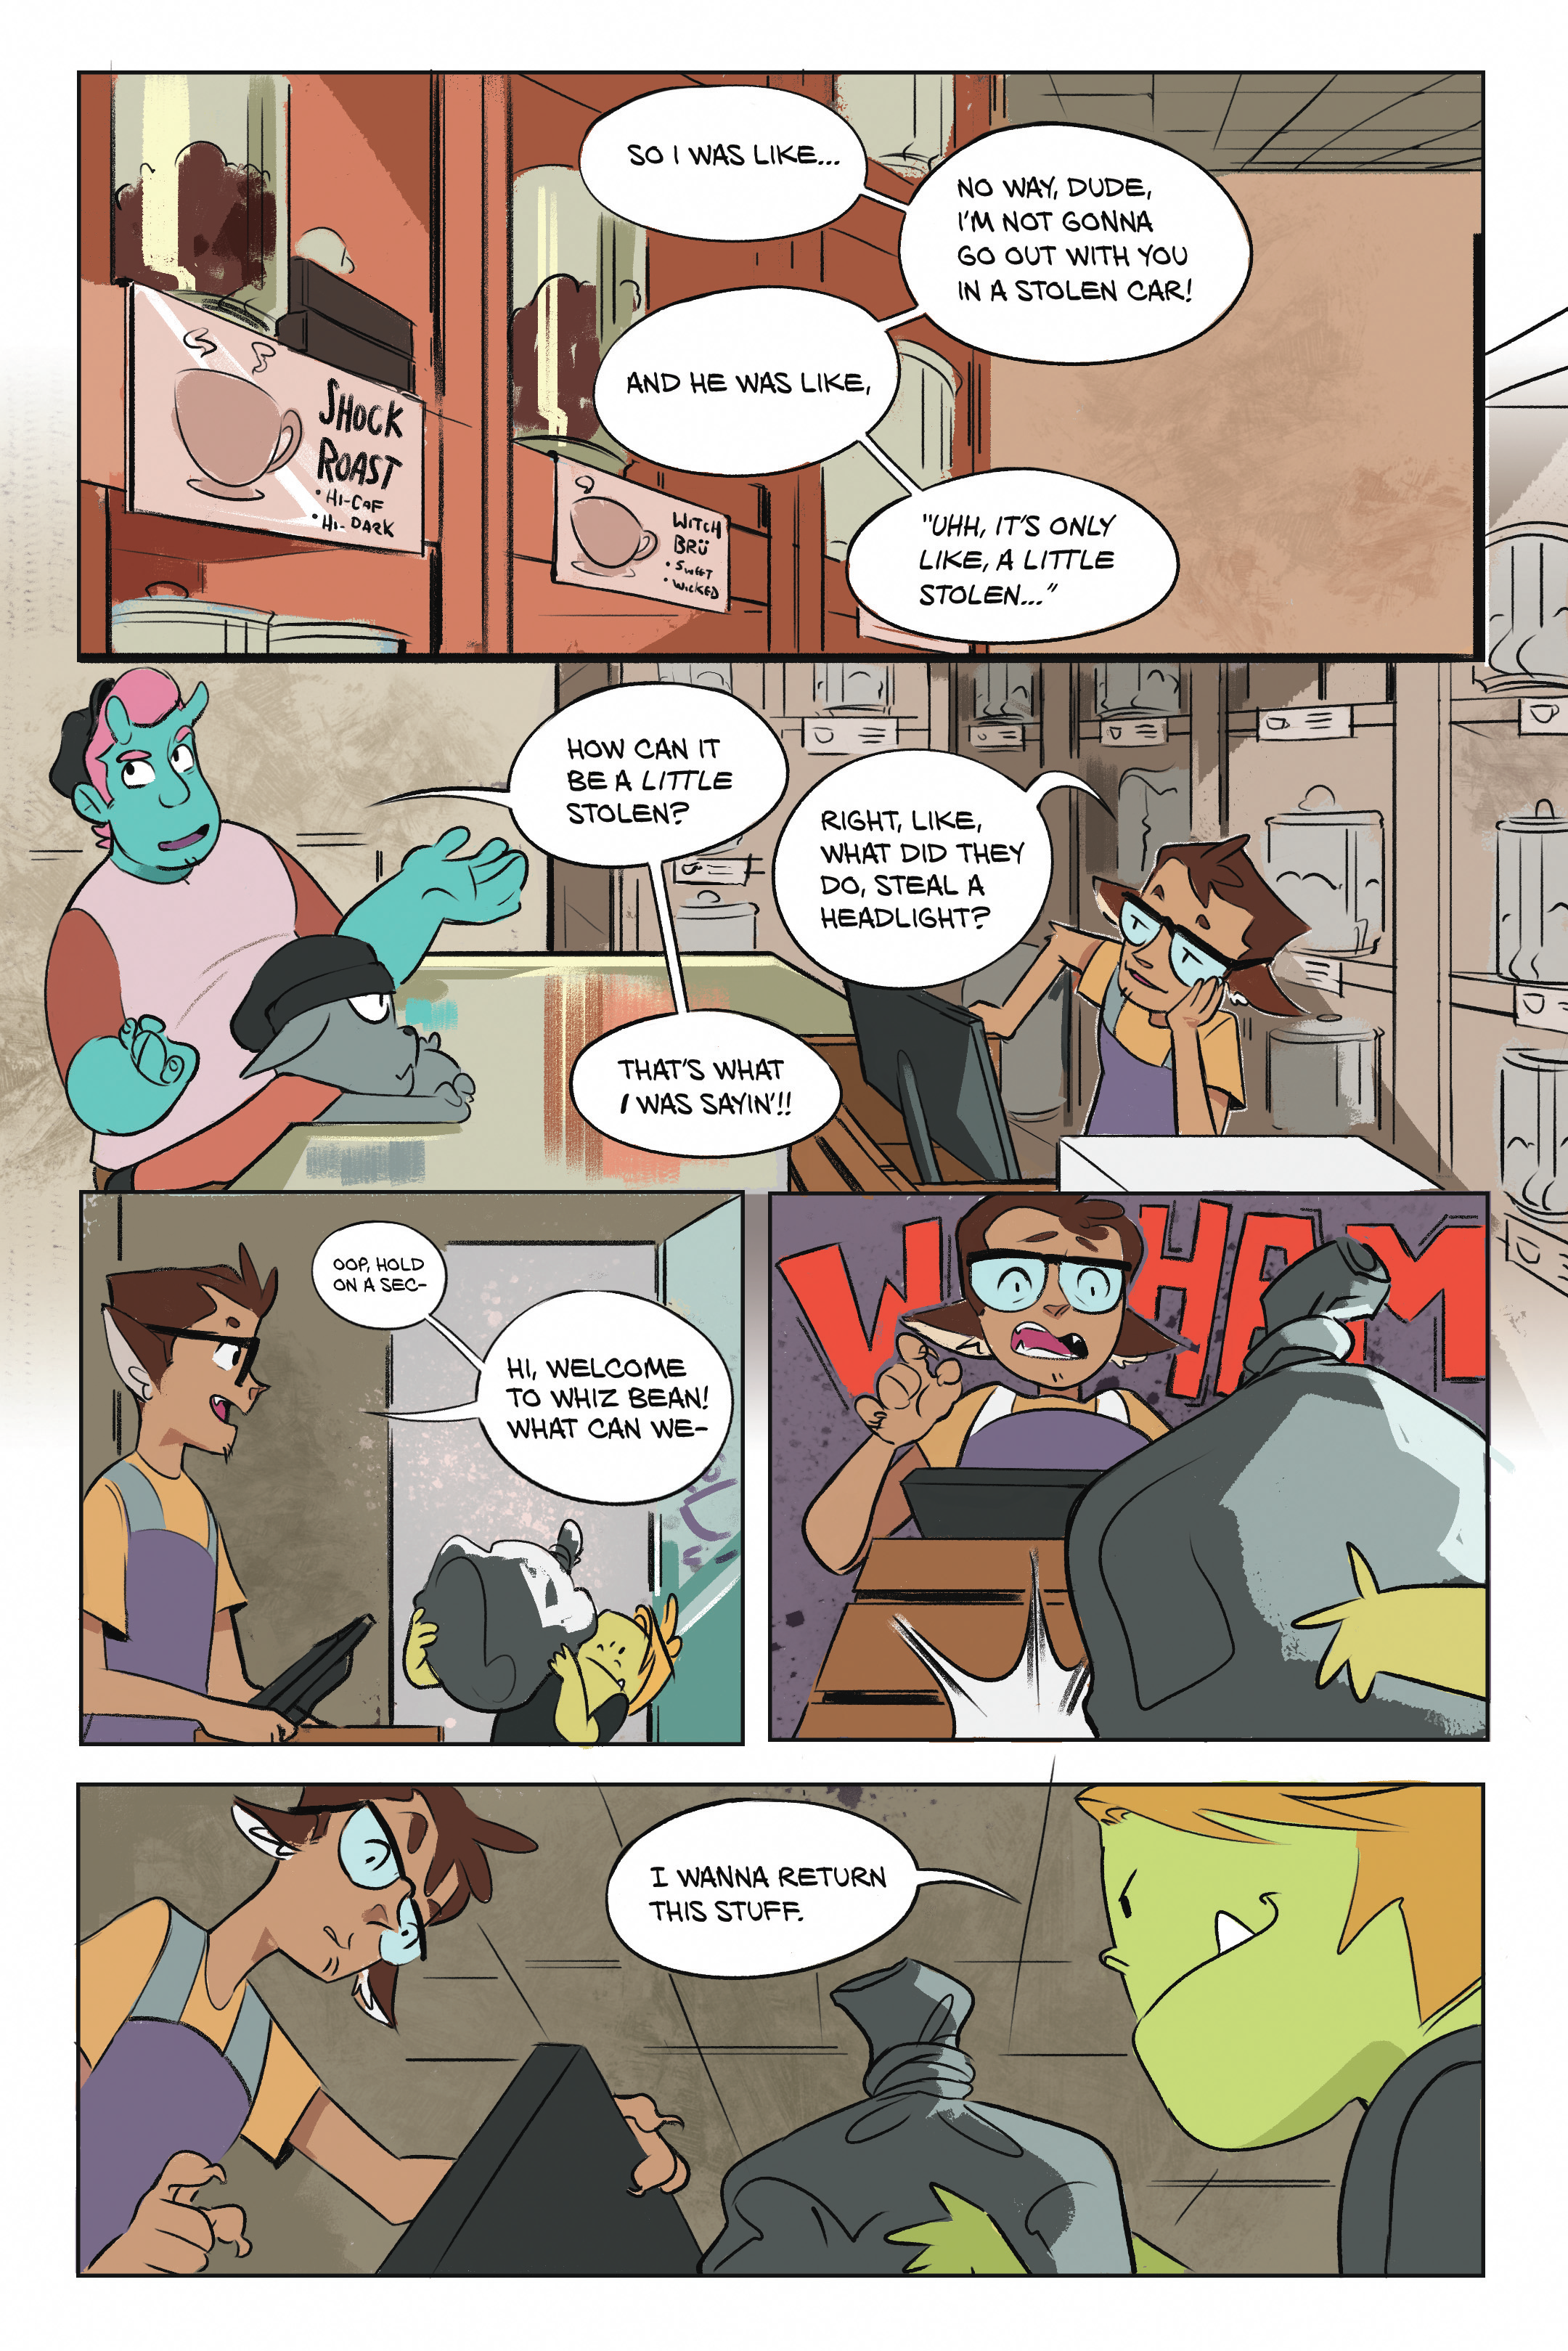 MOONTOOTH_Page_4.png